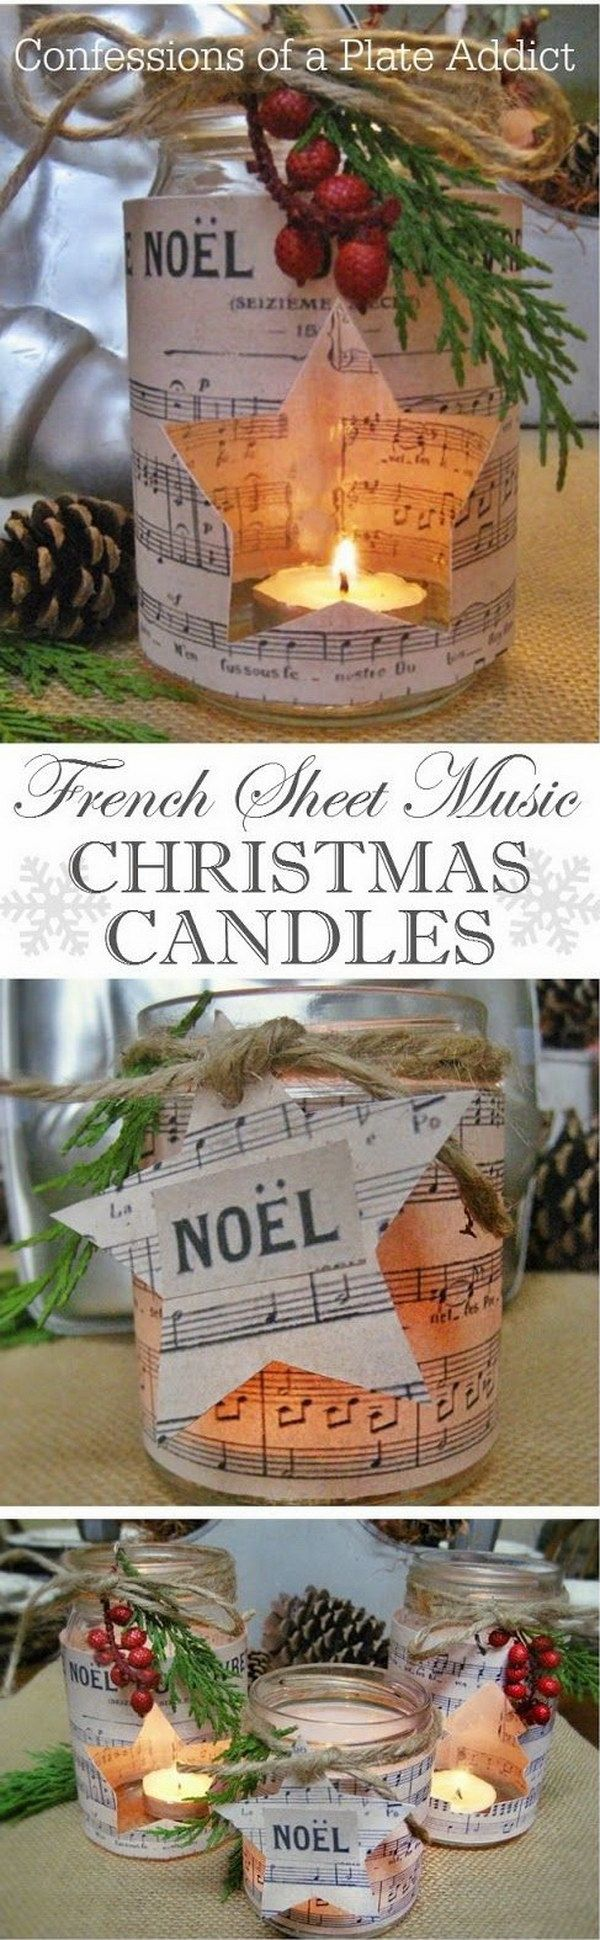 20+ Awesome DIY Christmas Gift Ideas & Tutorials | Share Your Craft ...